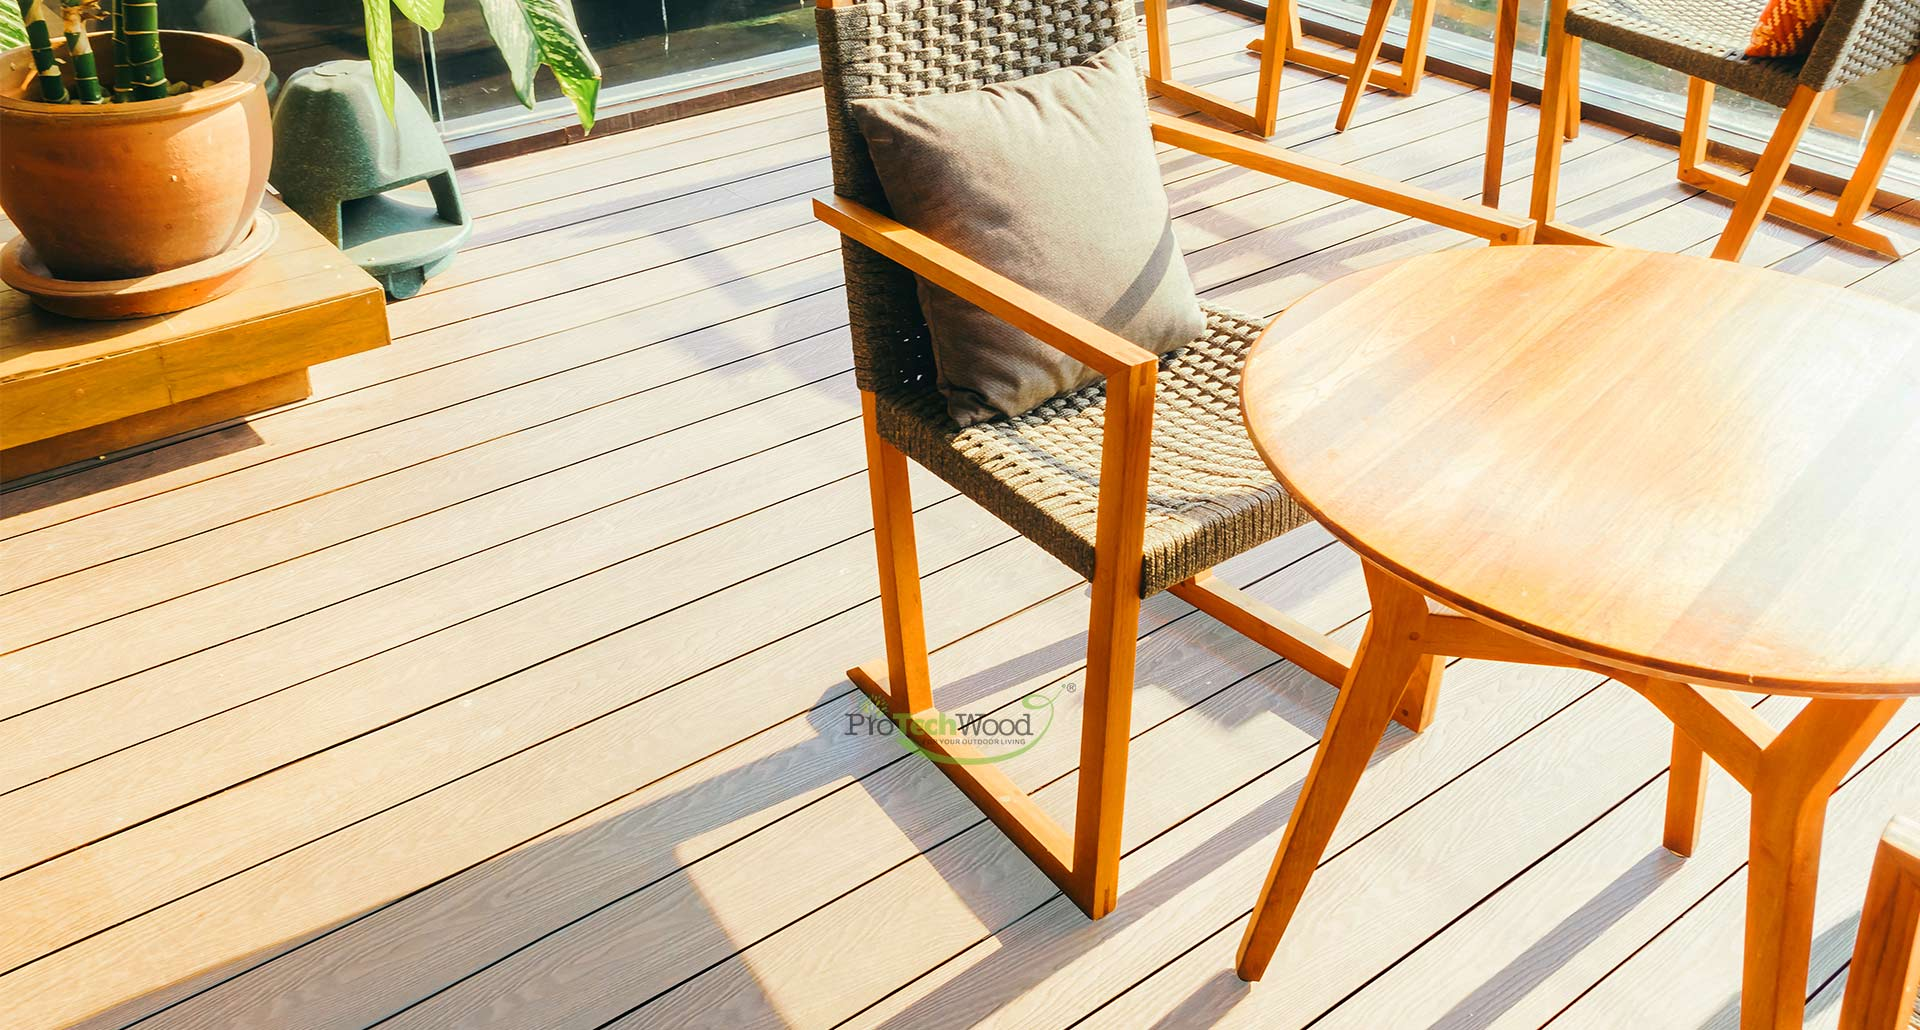 protechwood proshield wpc decking